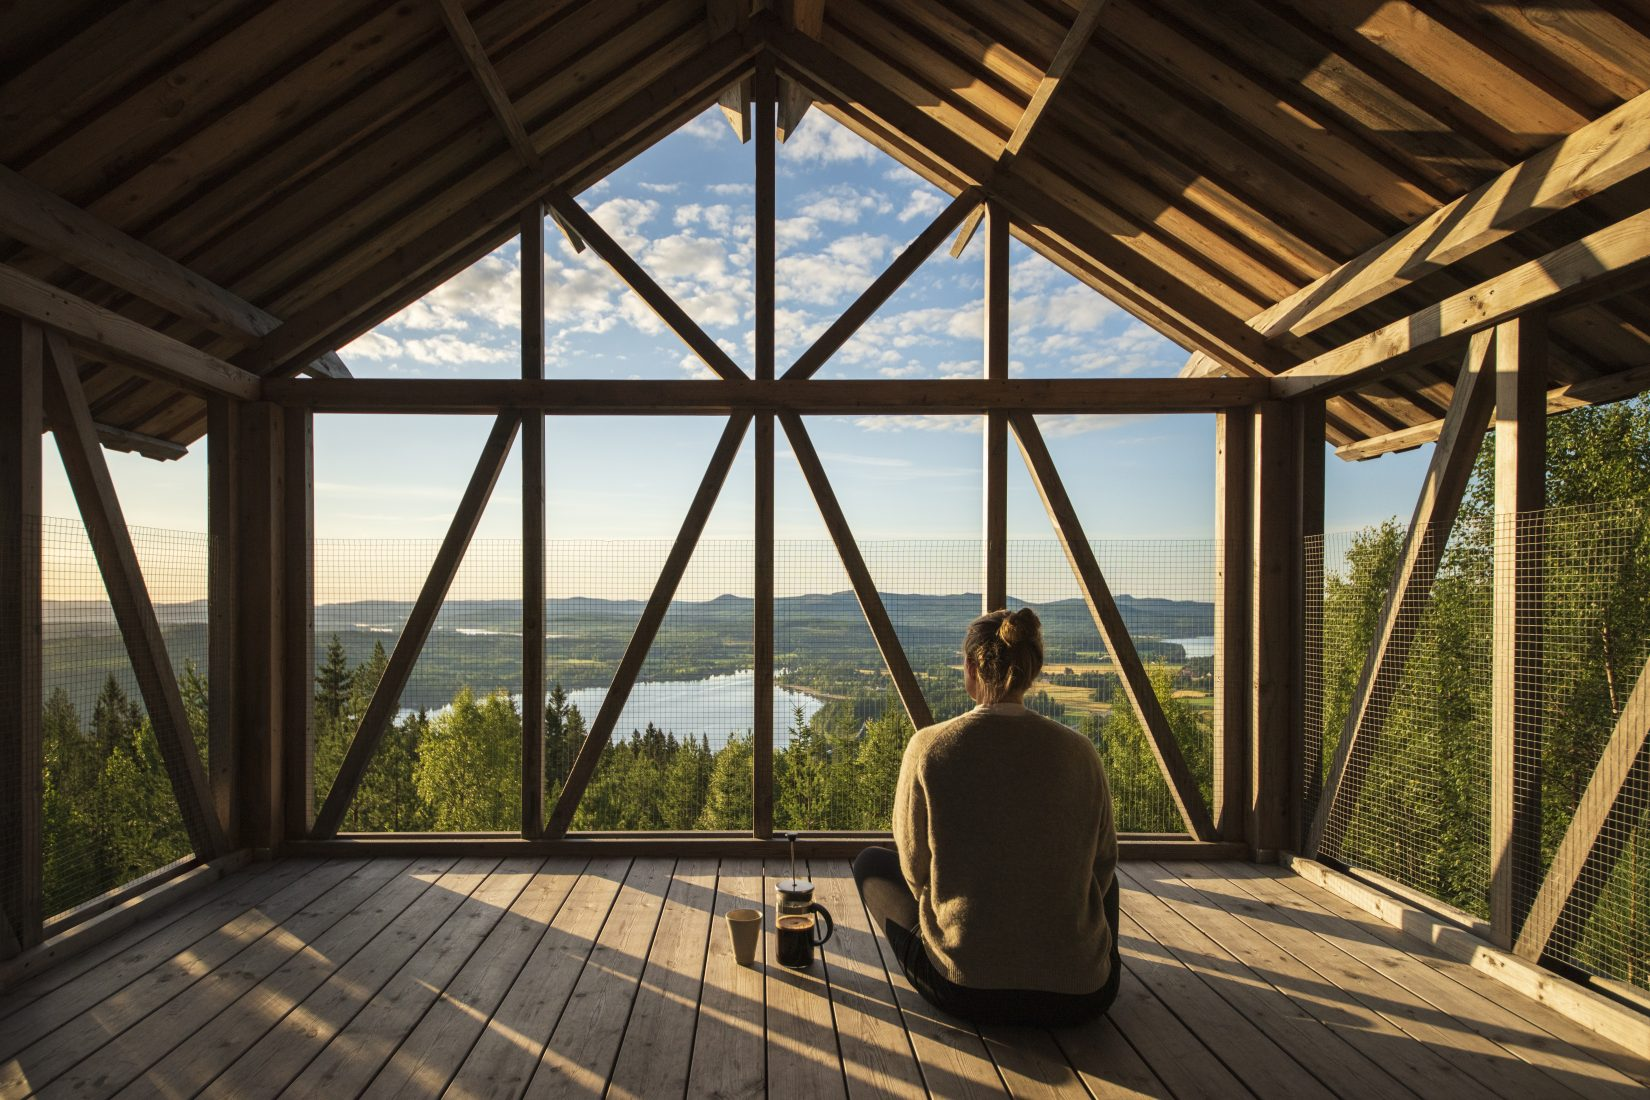 Person sitting in a wooden loft house looking out at a scenic view.